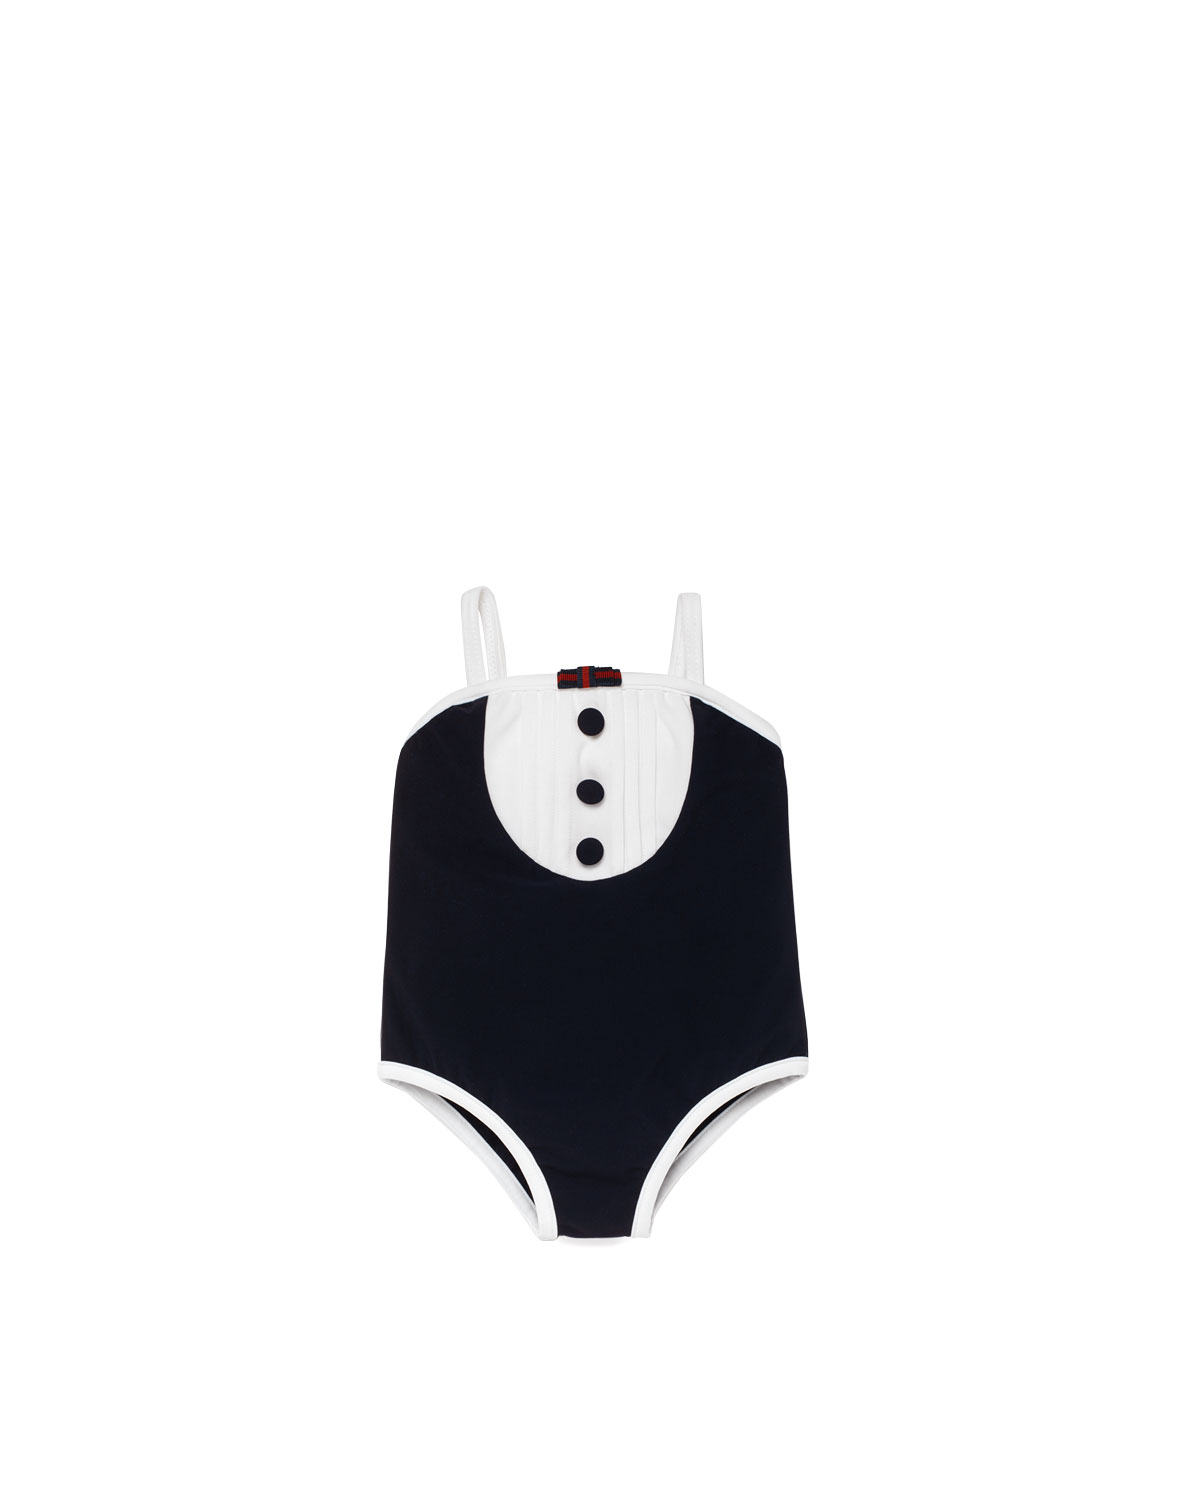 952e1e3d5a Gucci Baby Girl One-Piece Swimsuit